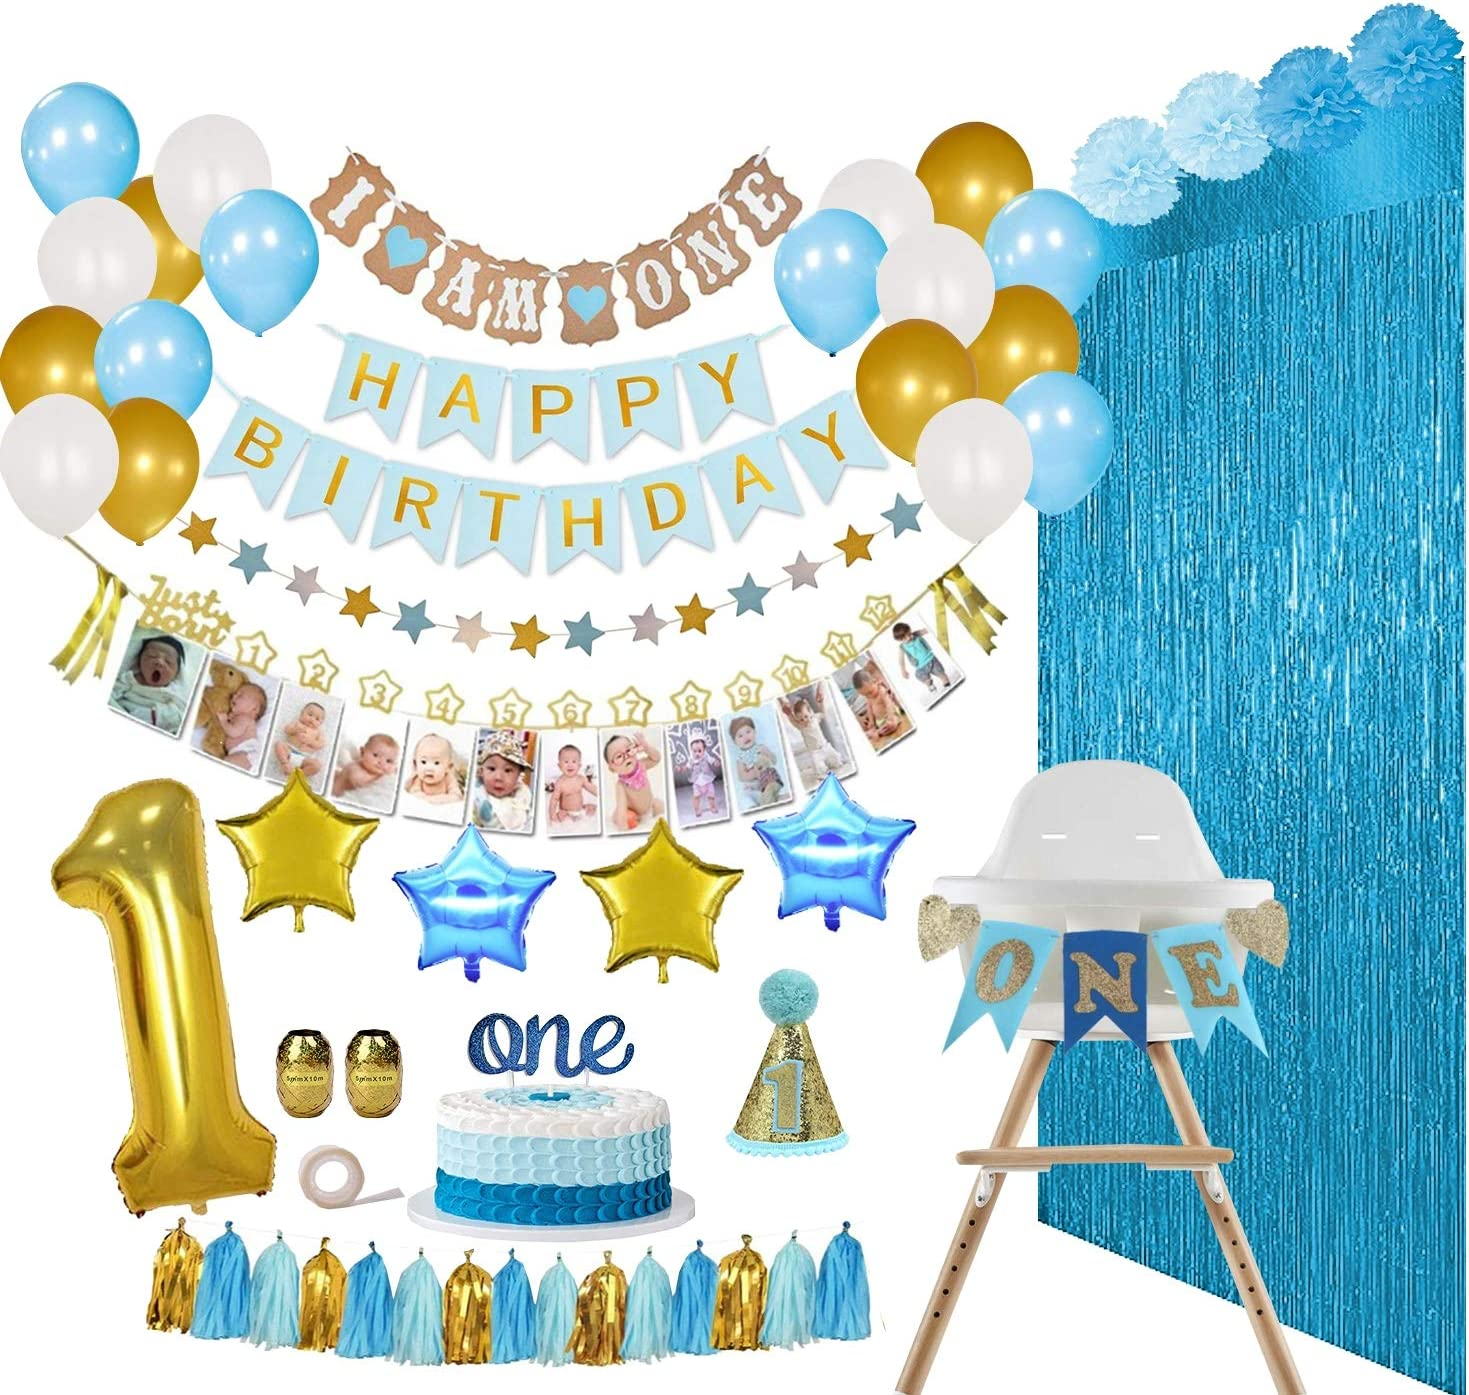 ReignDrop Baby Boy 1st Birthday Decorations Set – First Birthday Party Supplies - Happy Birthday,12 Month Photo, I am One Banner - High Chair Decoration – With Poms, Balloons, Backdrops, Hat and more